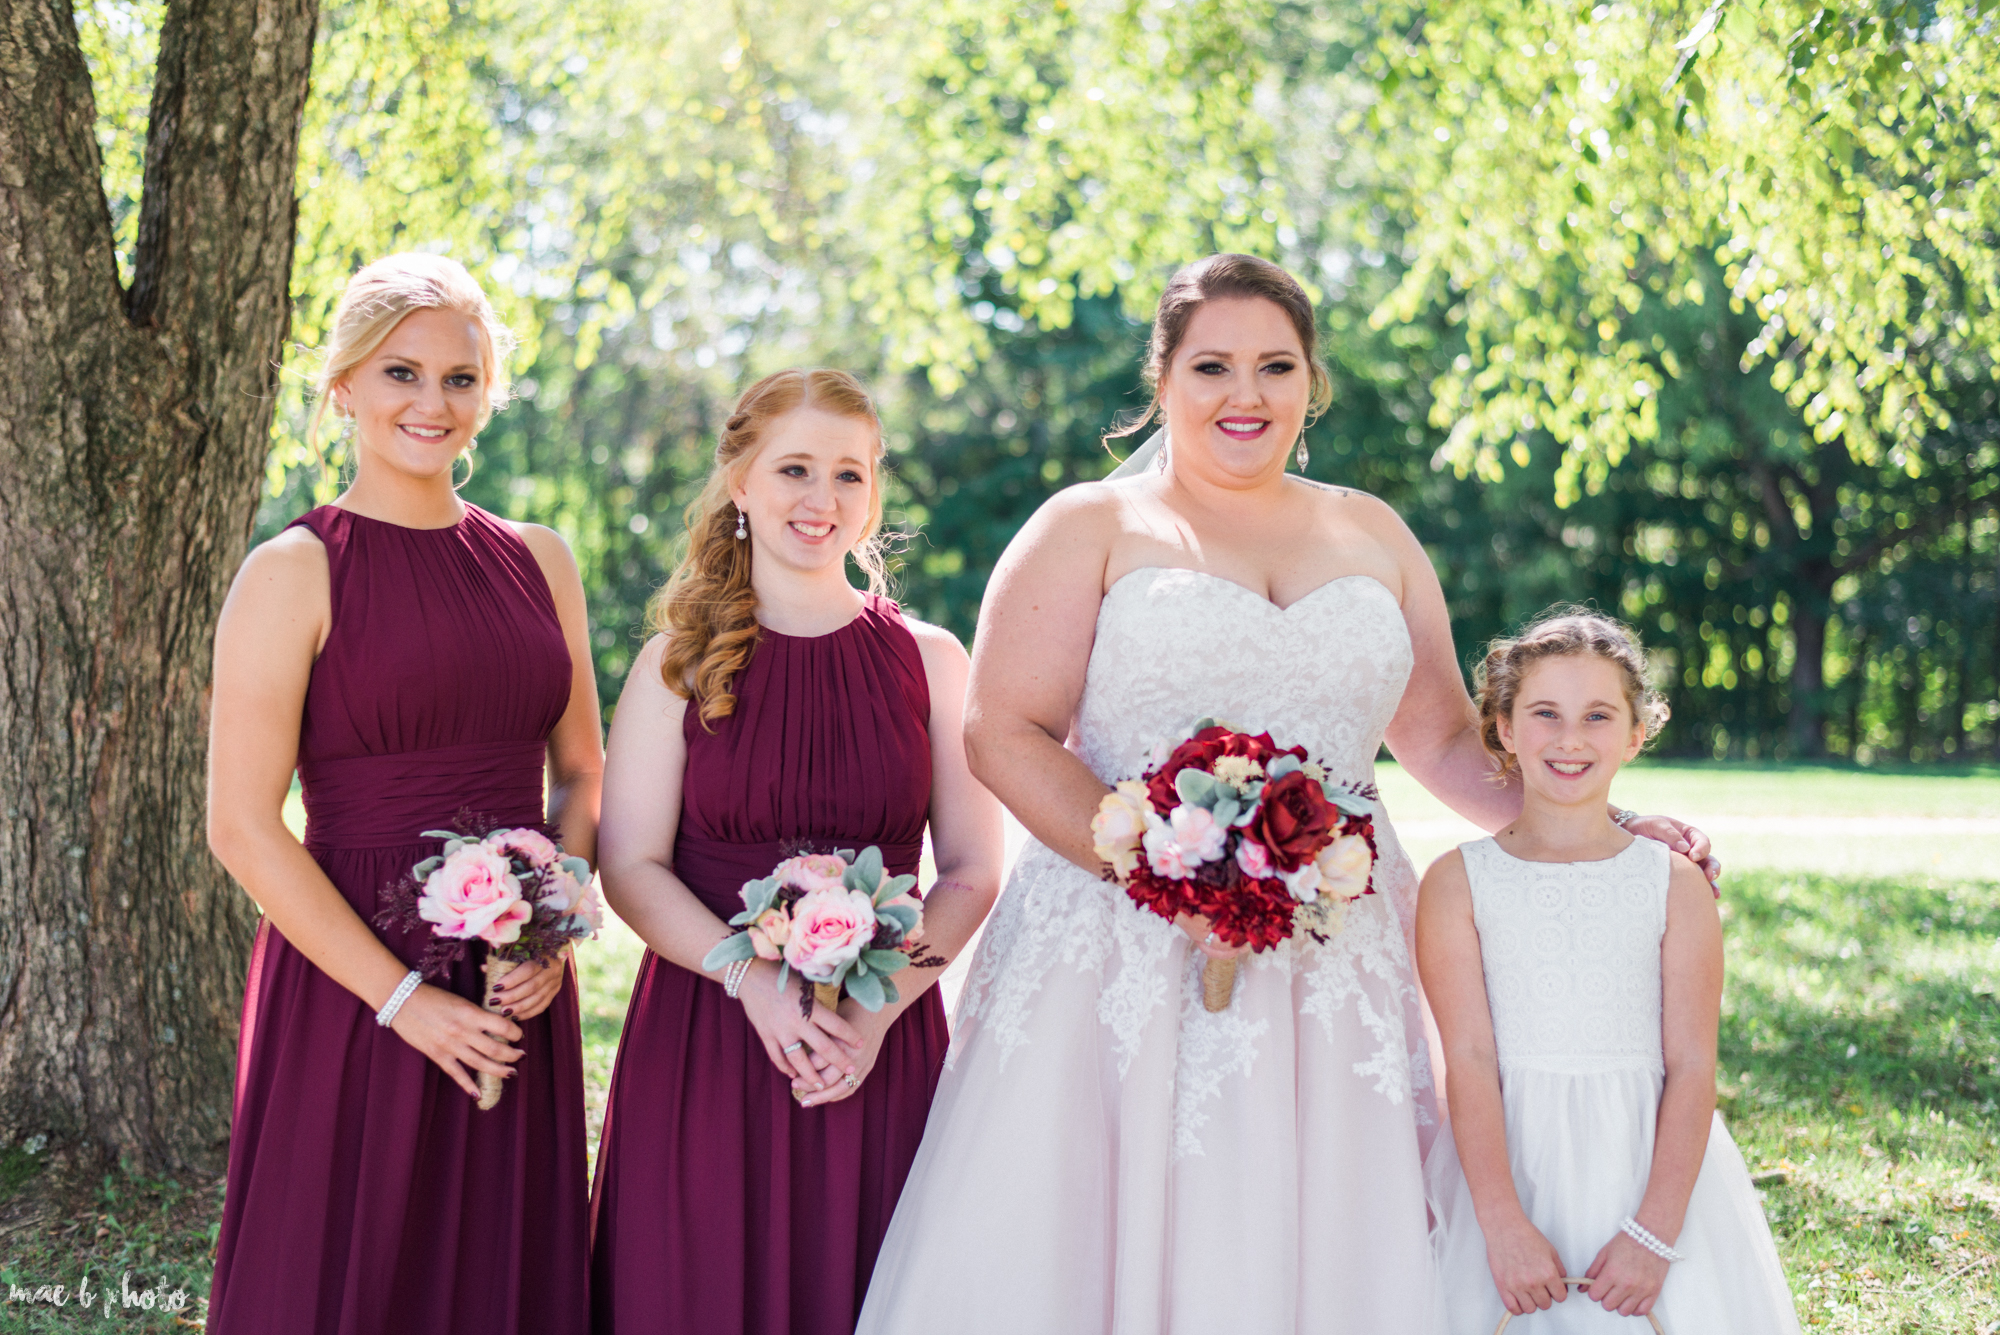 Amber & Kyle's Rustic Barn Wedding at SNPJ in Enon Valley, PA by Mae B Photo-50.jpg